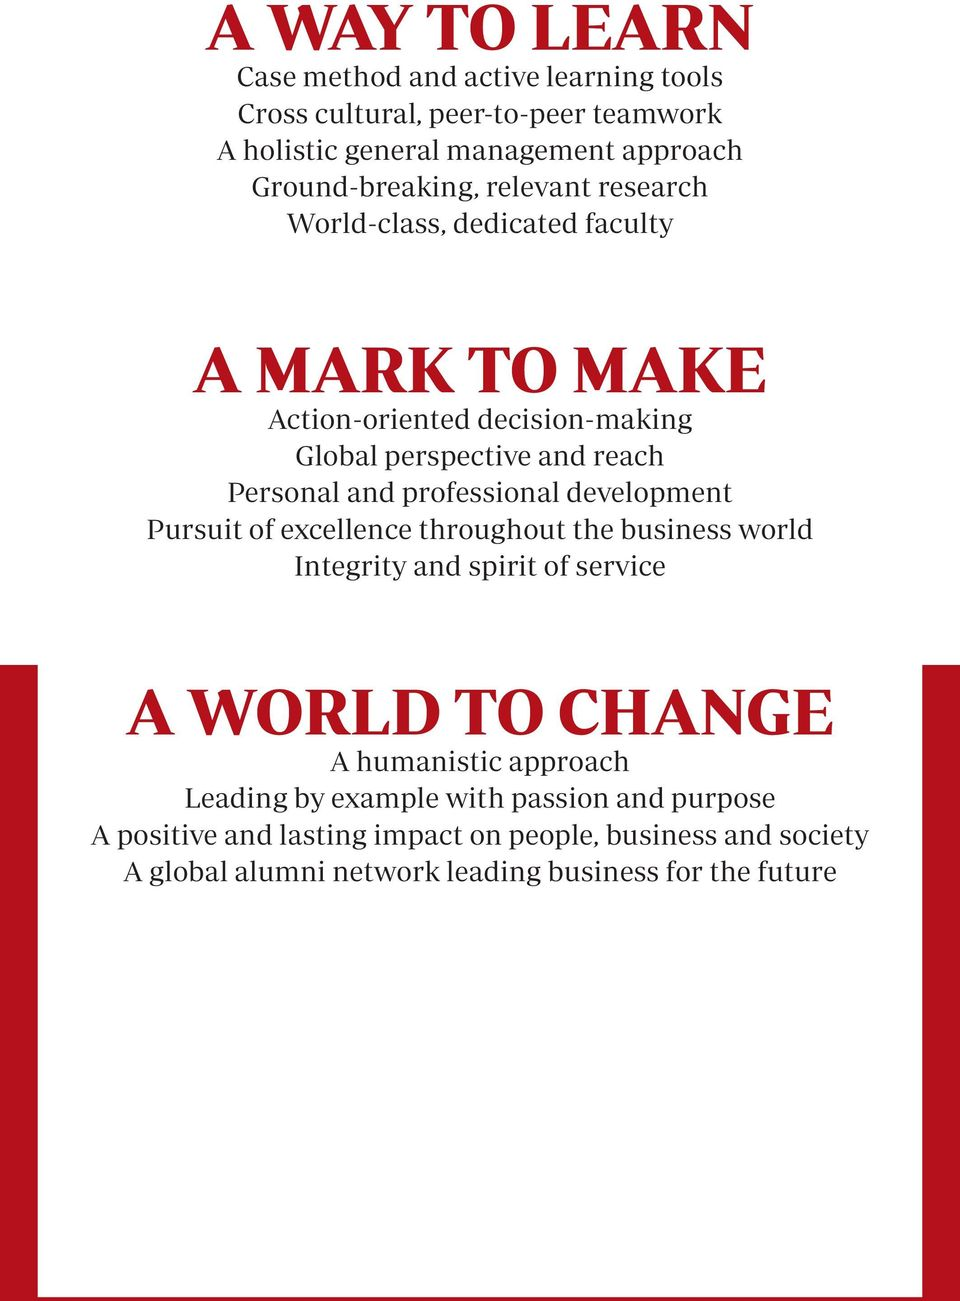 professional development Pursuit of excellence throughout the business world Integrity and spirit of service A WORLD TO CHANGE A humanistic approach